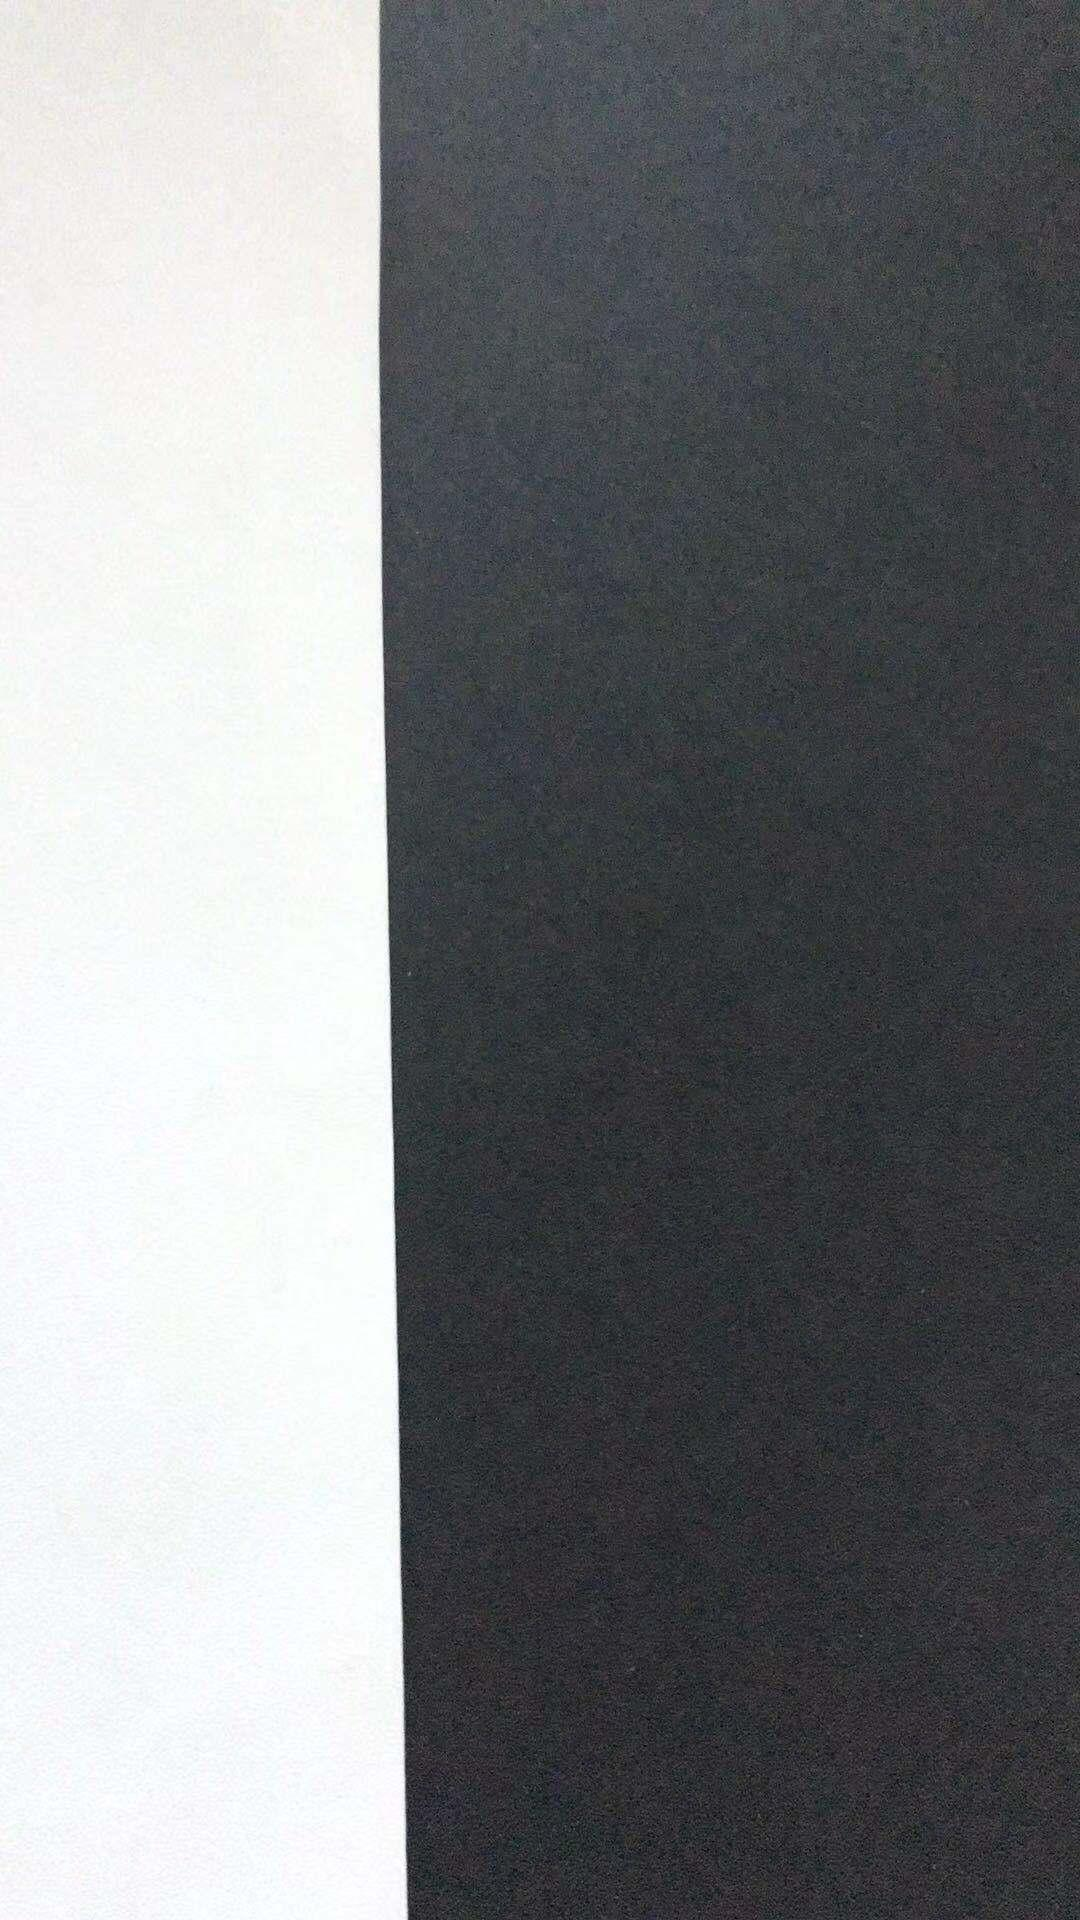 150g one side white coated black paper 1